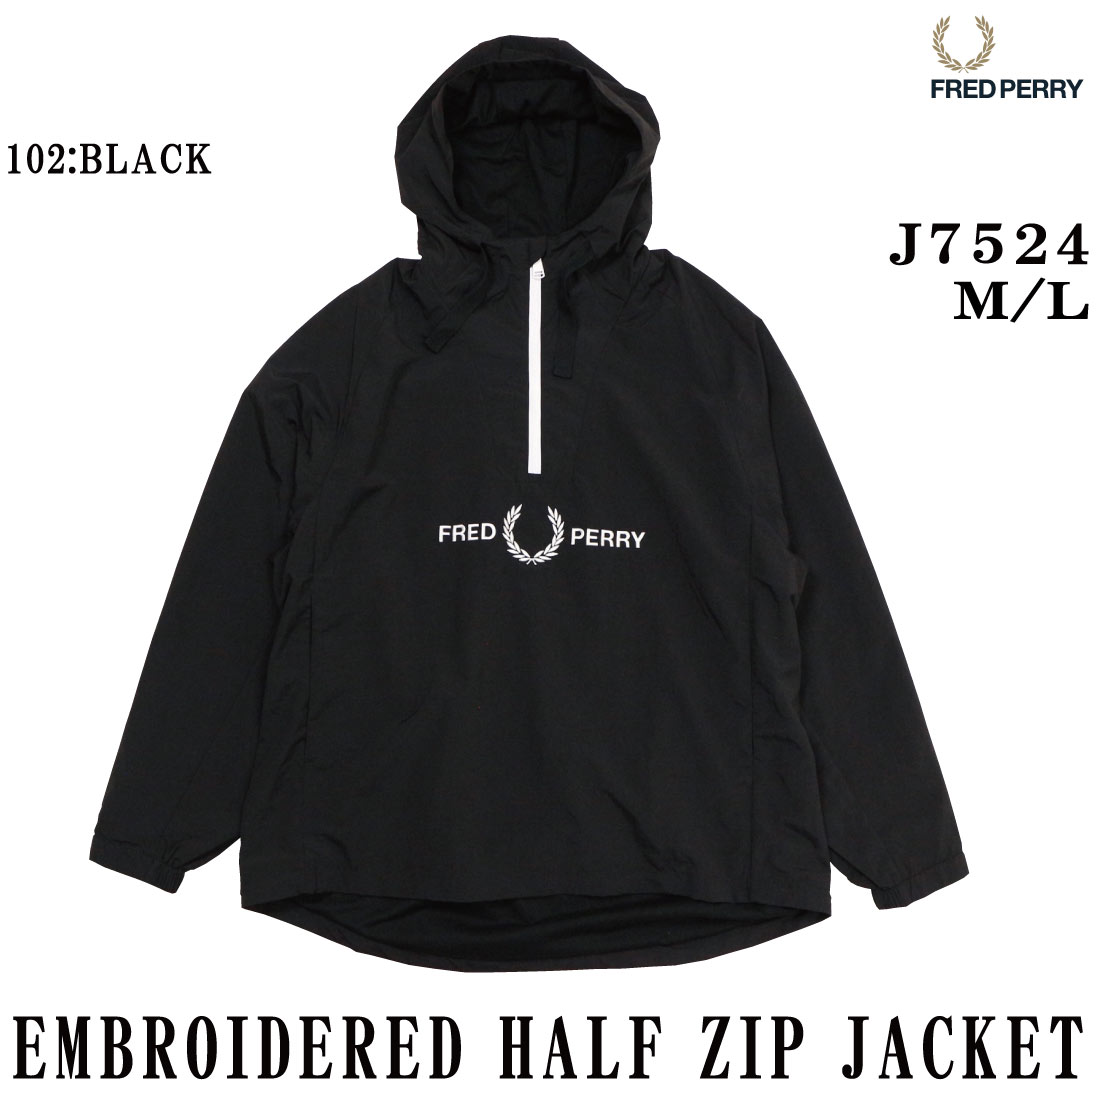 FRED PERRY フレッドペリー J7524 EMBROIDERED HALF ZIP JACKET ルーズシルエット 月桂樹 メンズ 国内正規品